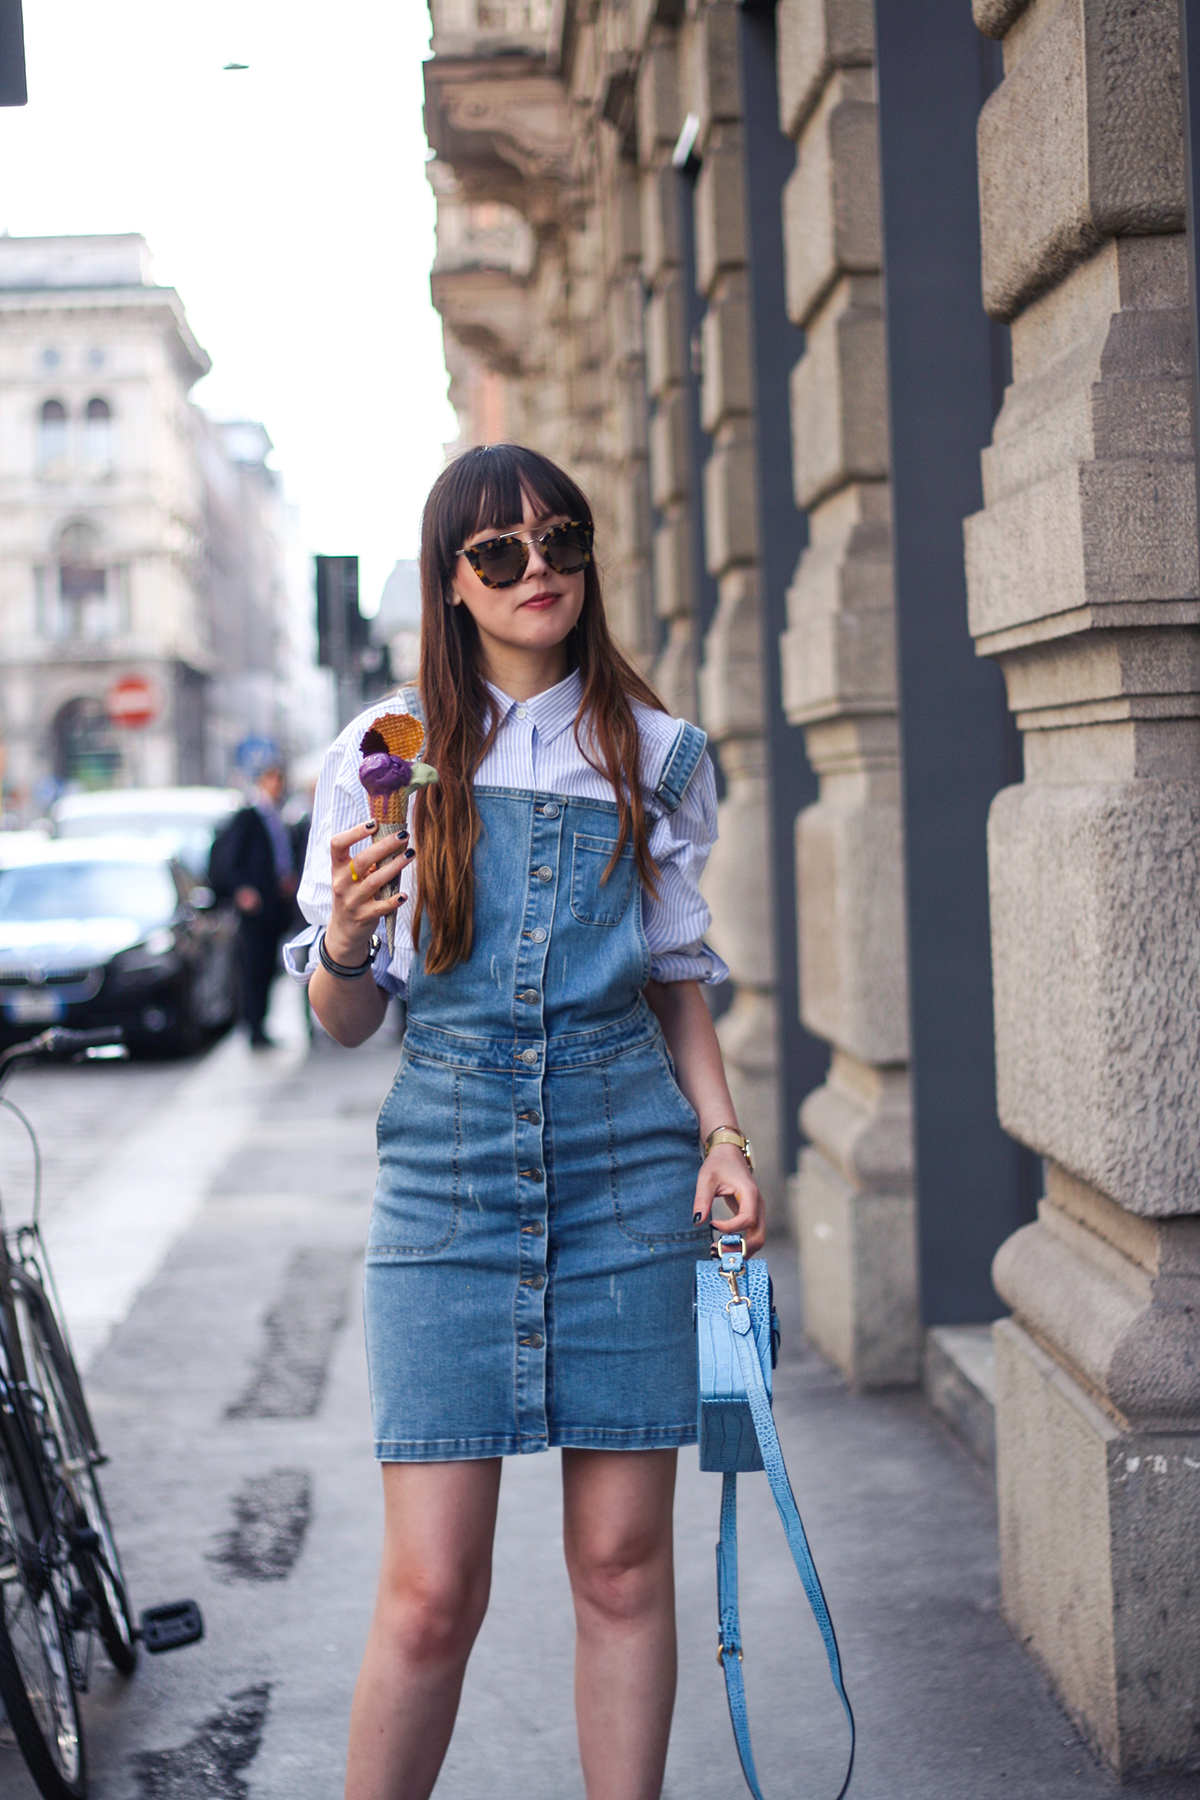 denim-dungaree-dress-spring-outfit-fashion-blogger-7